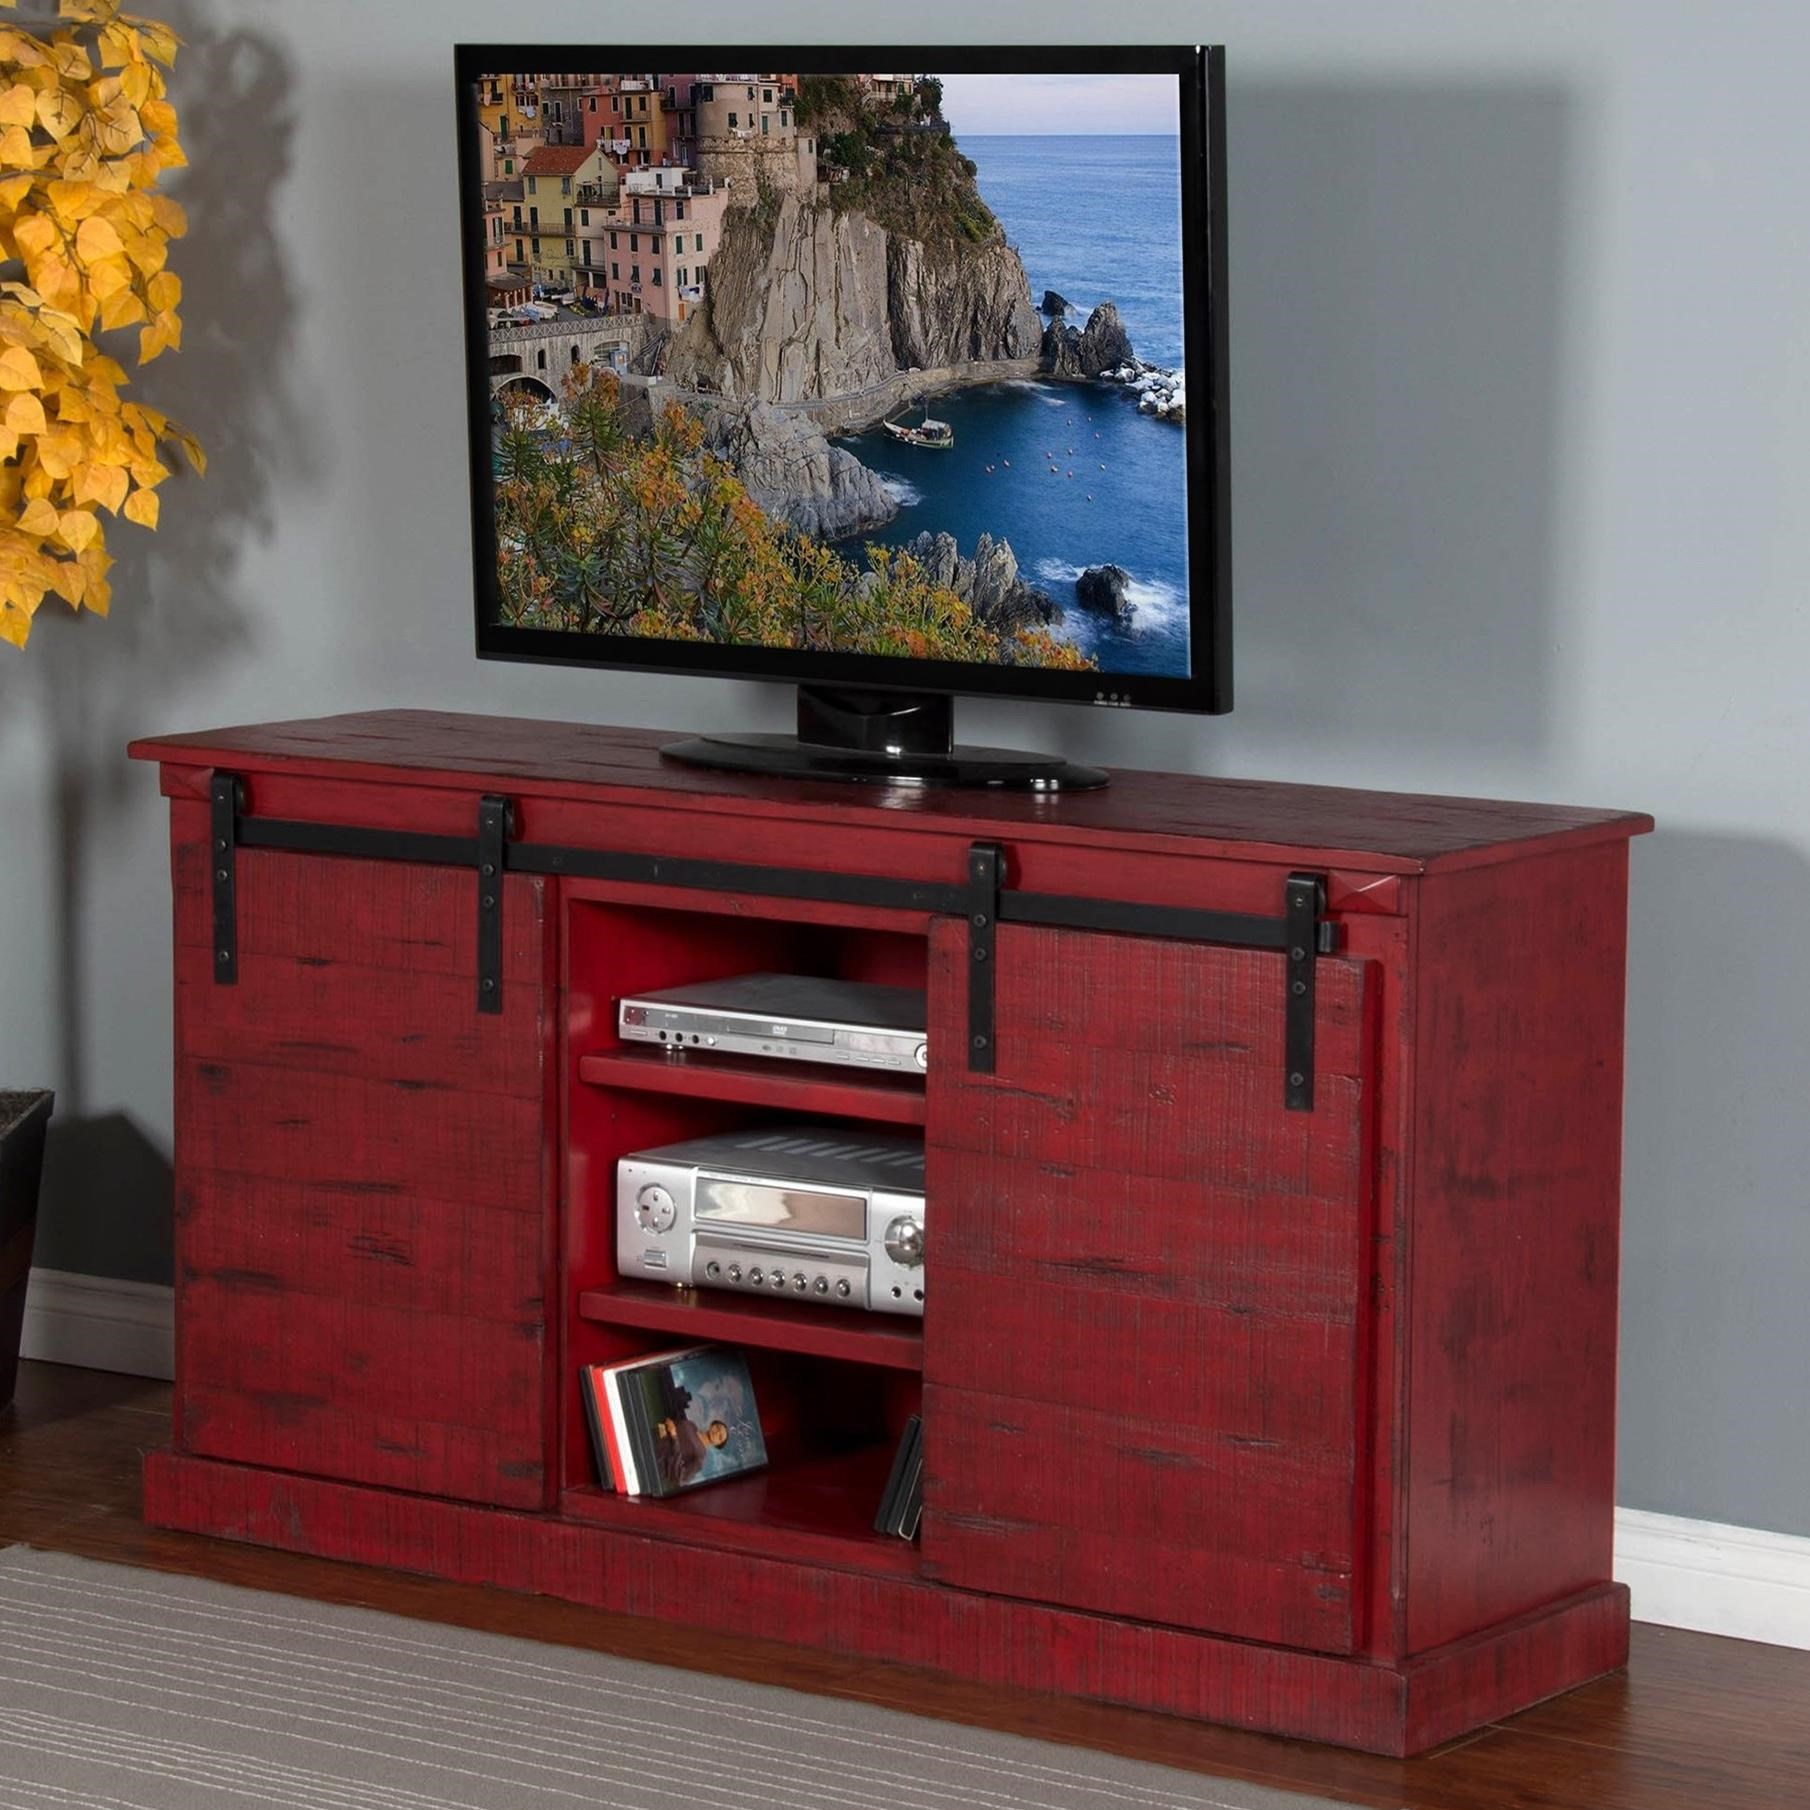 Designs Of Tv Stand : Z line designs tv stand tv stand